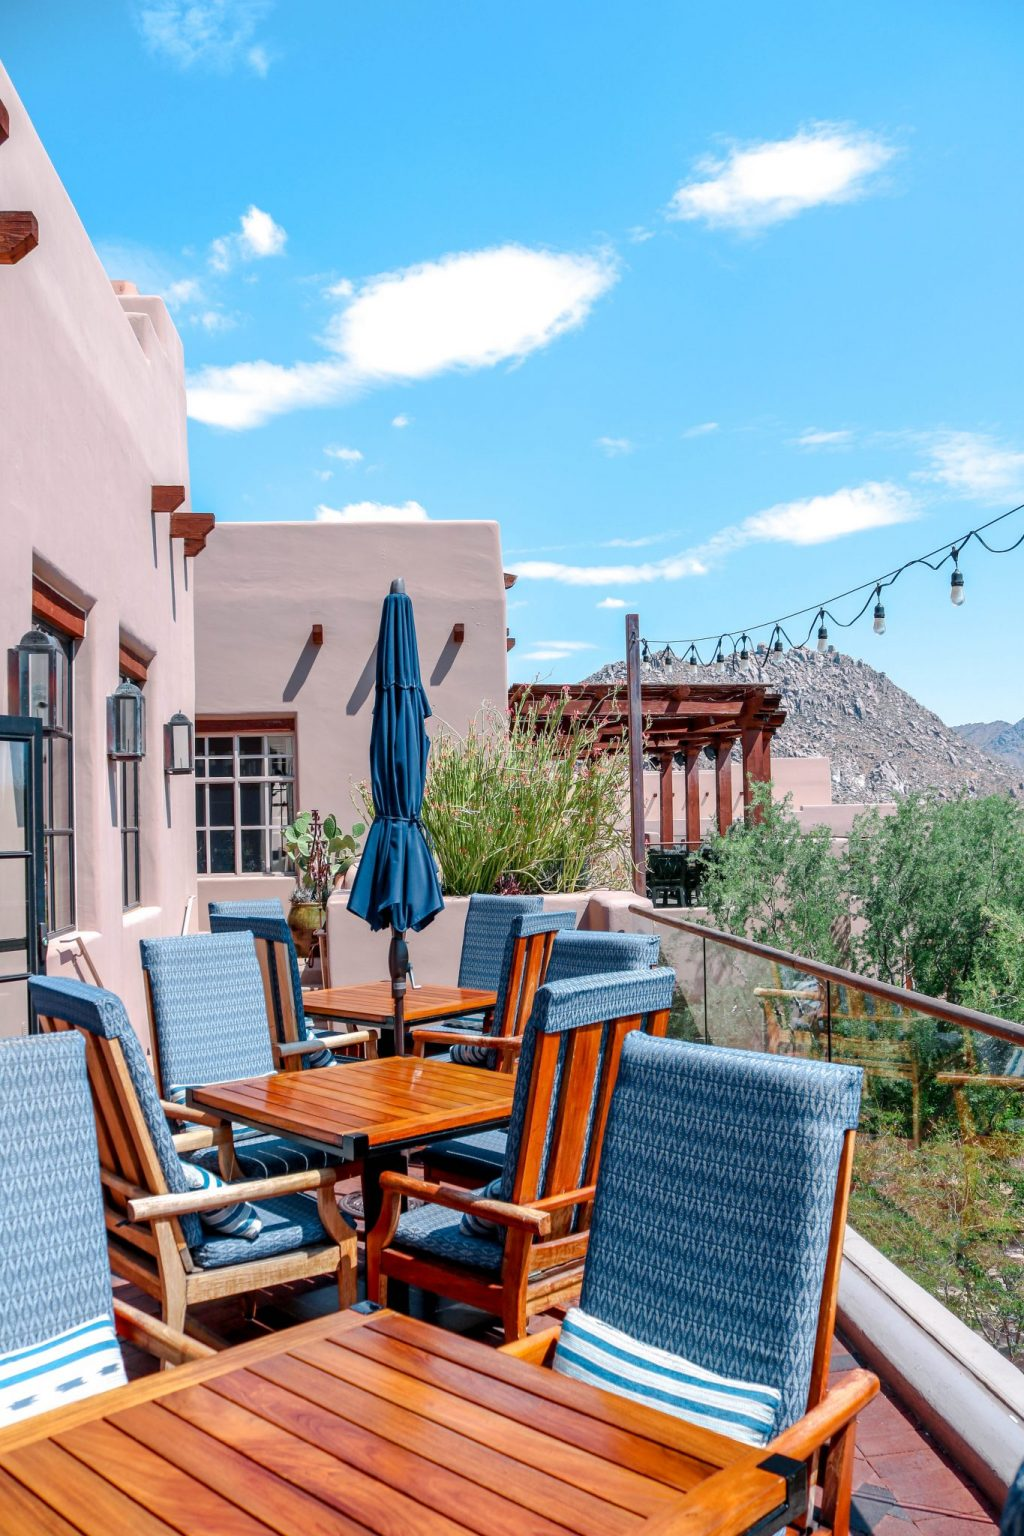 Where To Stay In Scottsdale